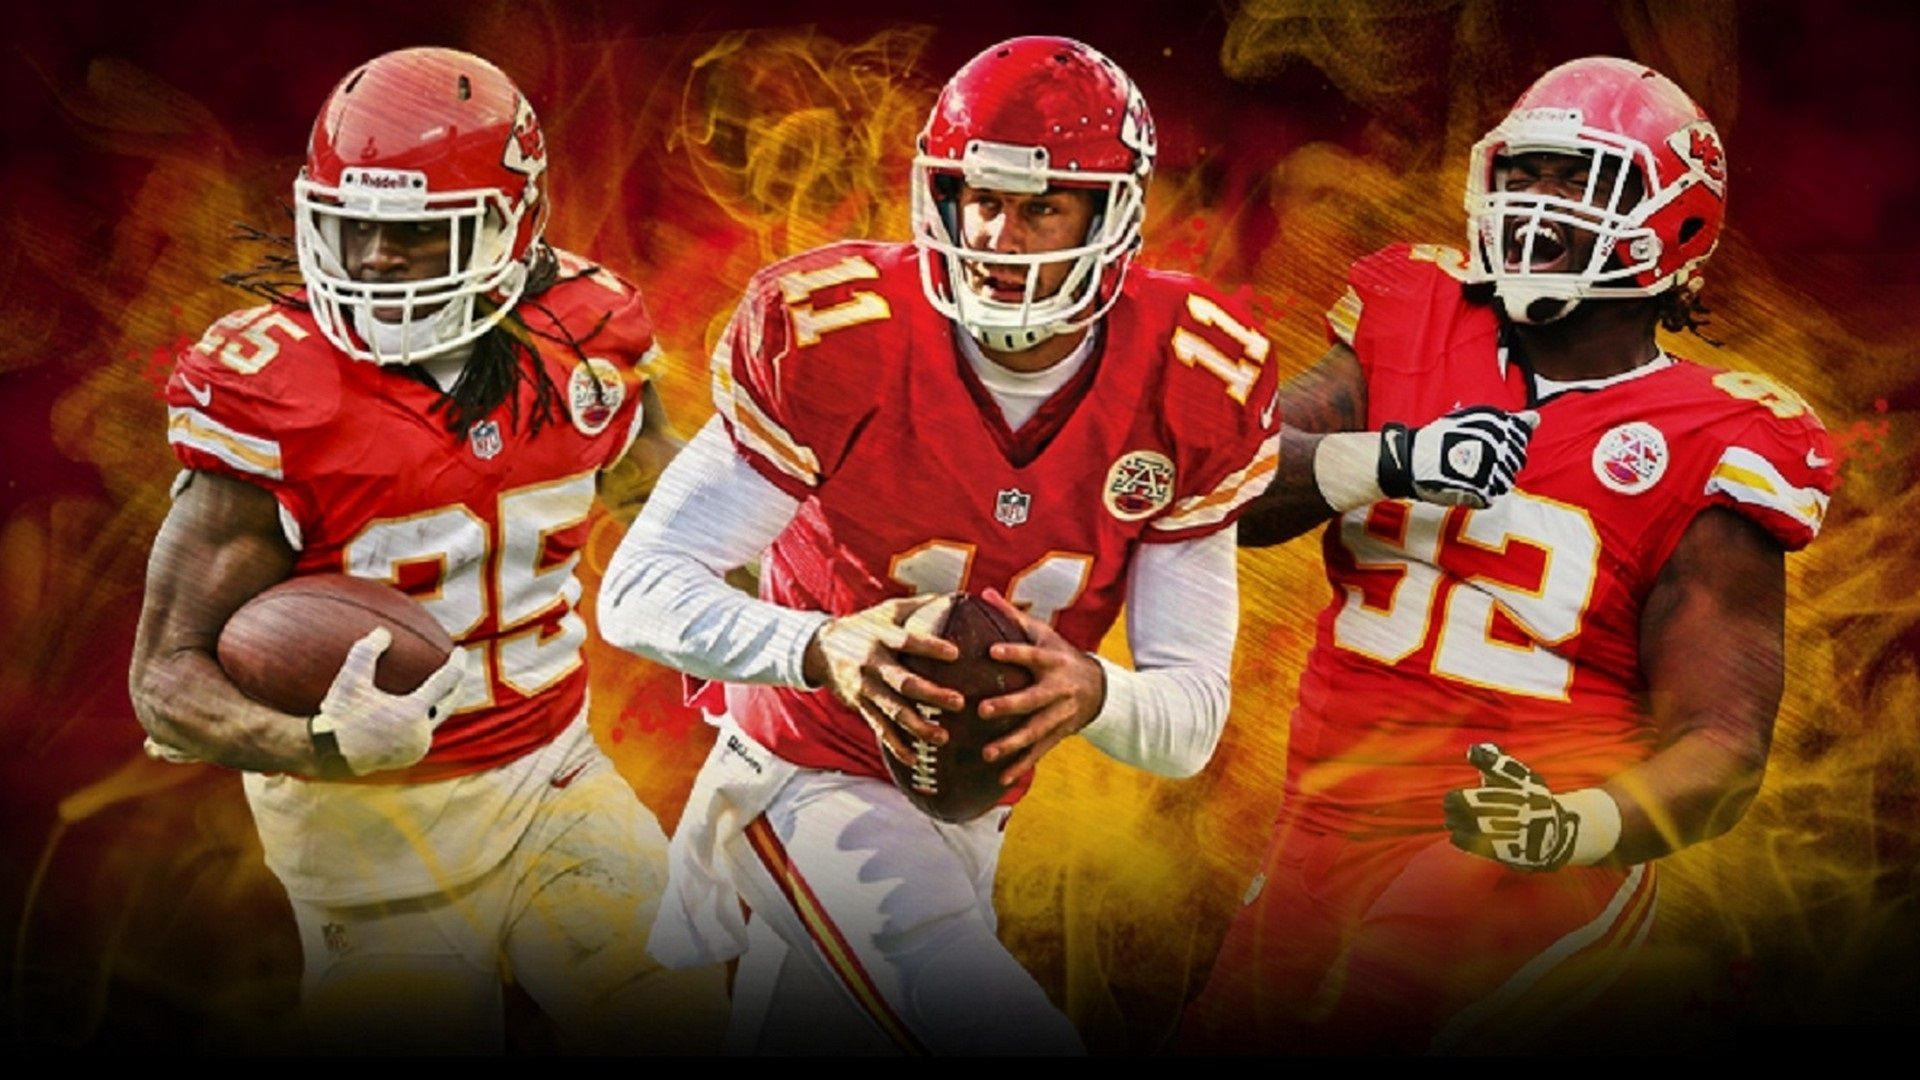 Kansas City Chiefs Wallpaper Team 1920x1080 Wallpaper Teahub Io